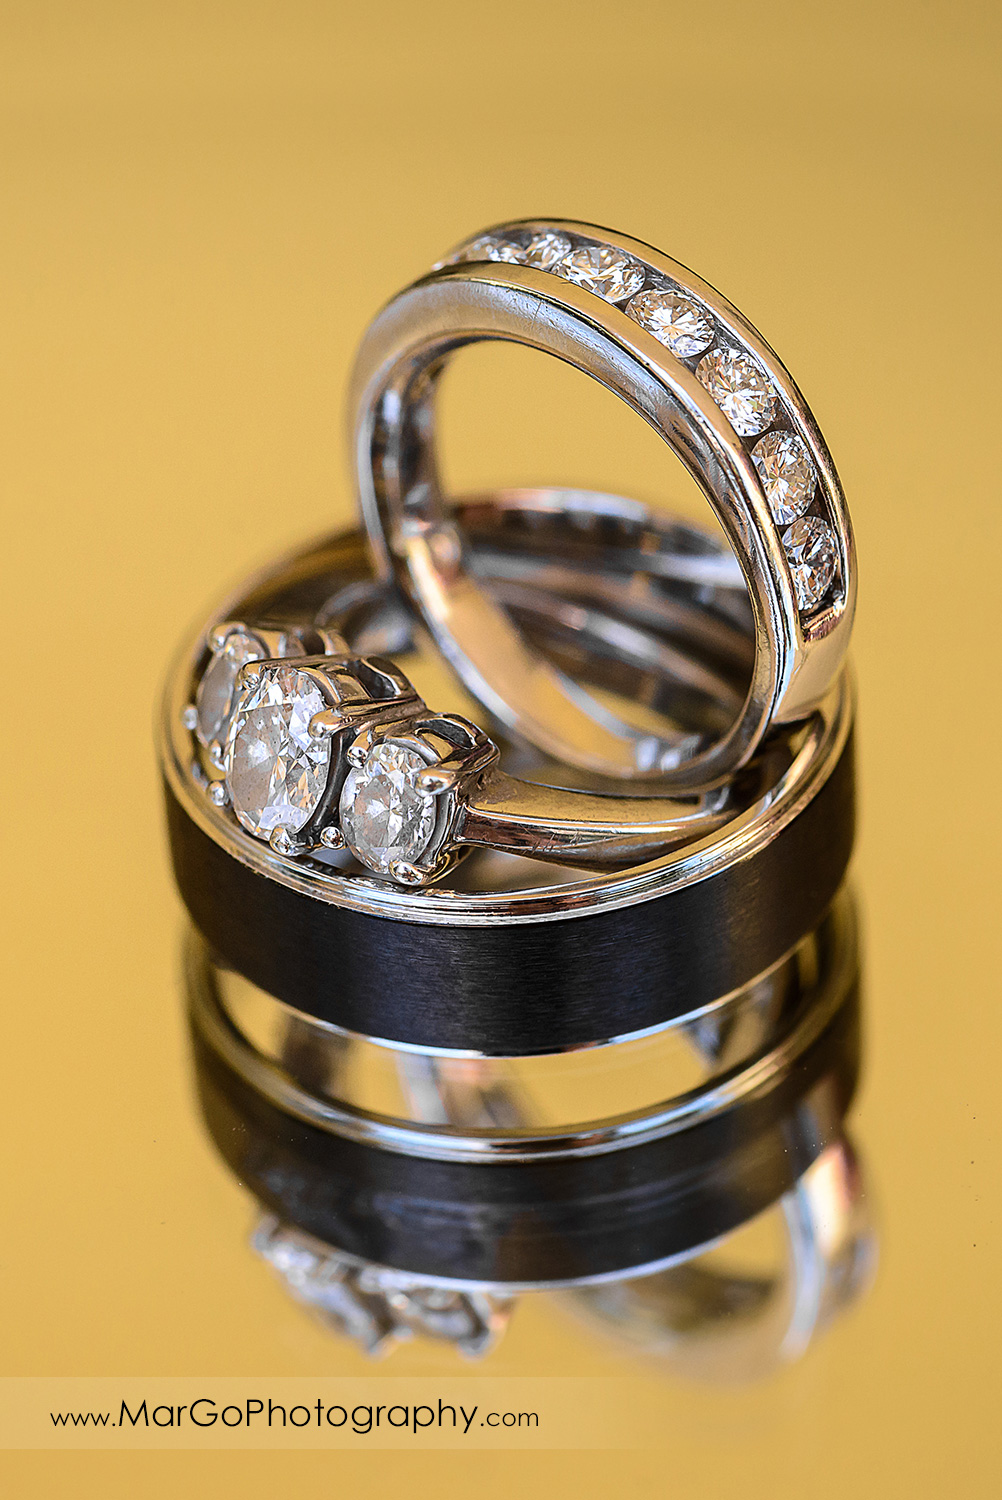 wedding rings at Picchetti Winery in Cupertino